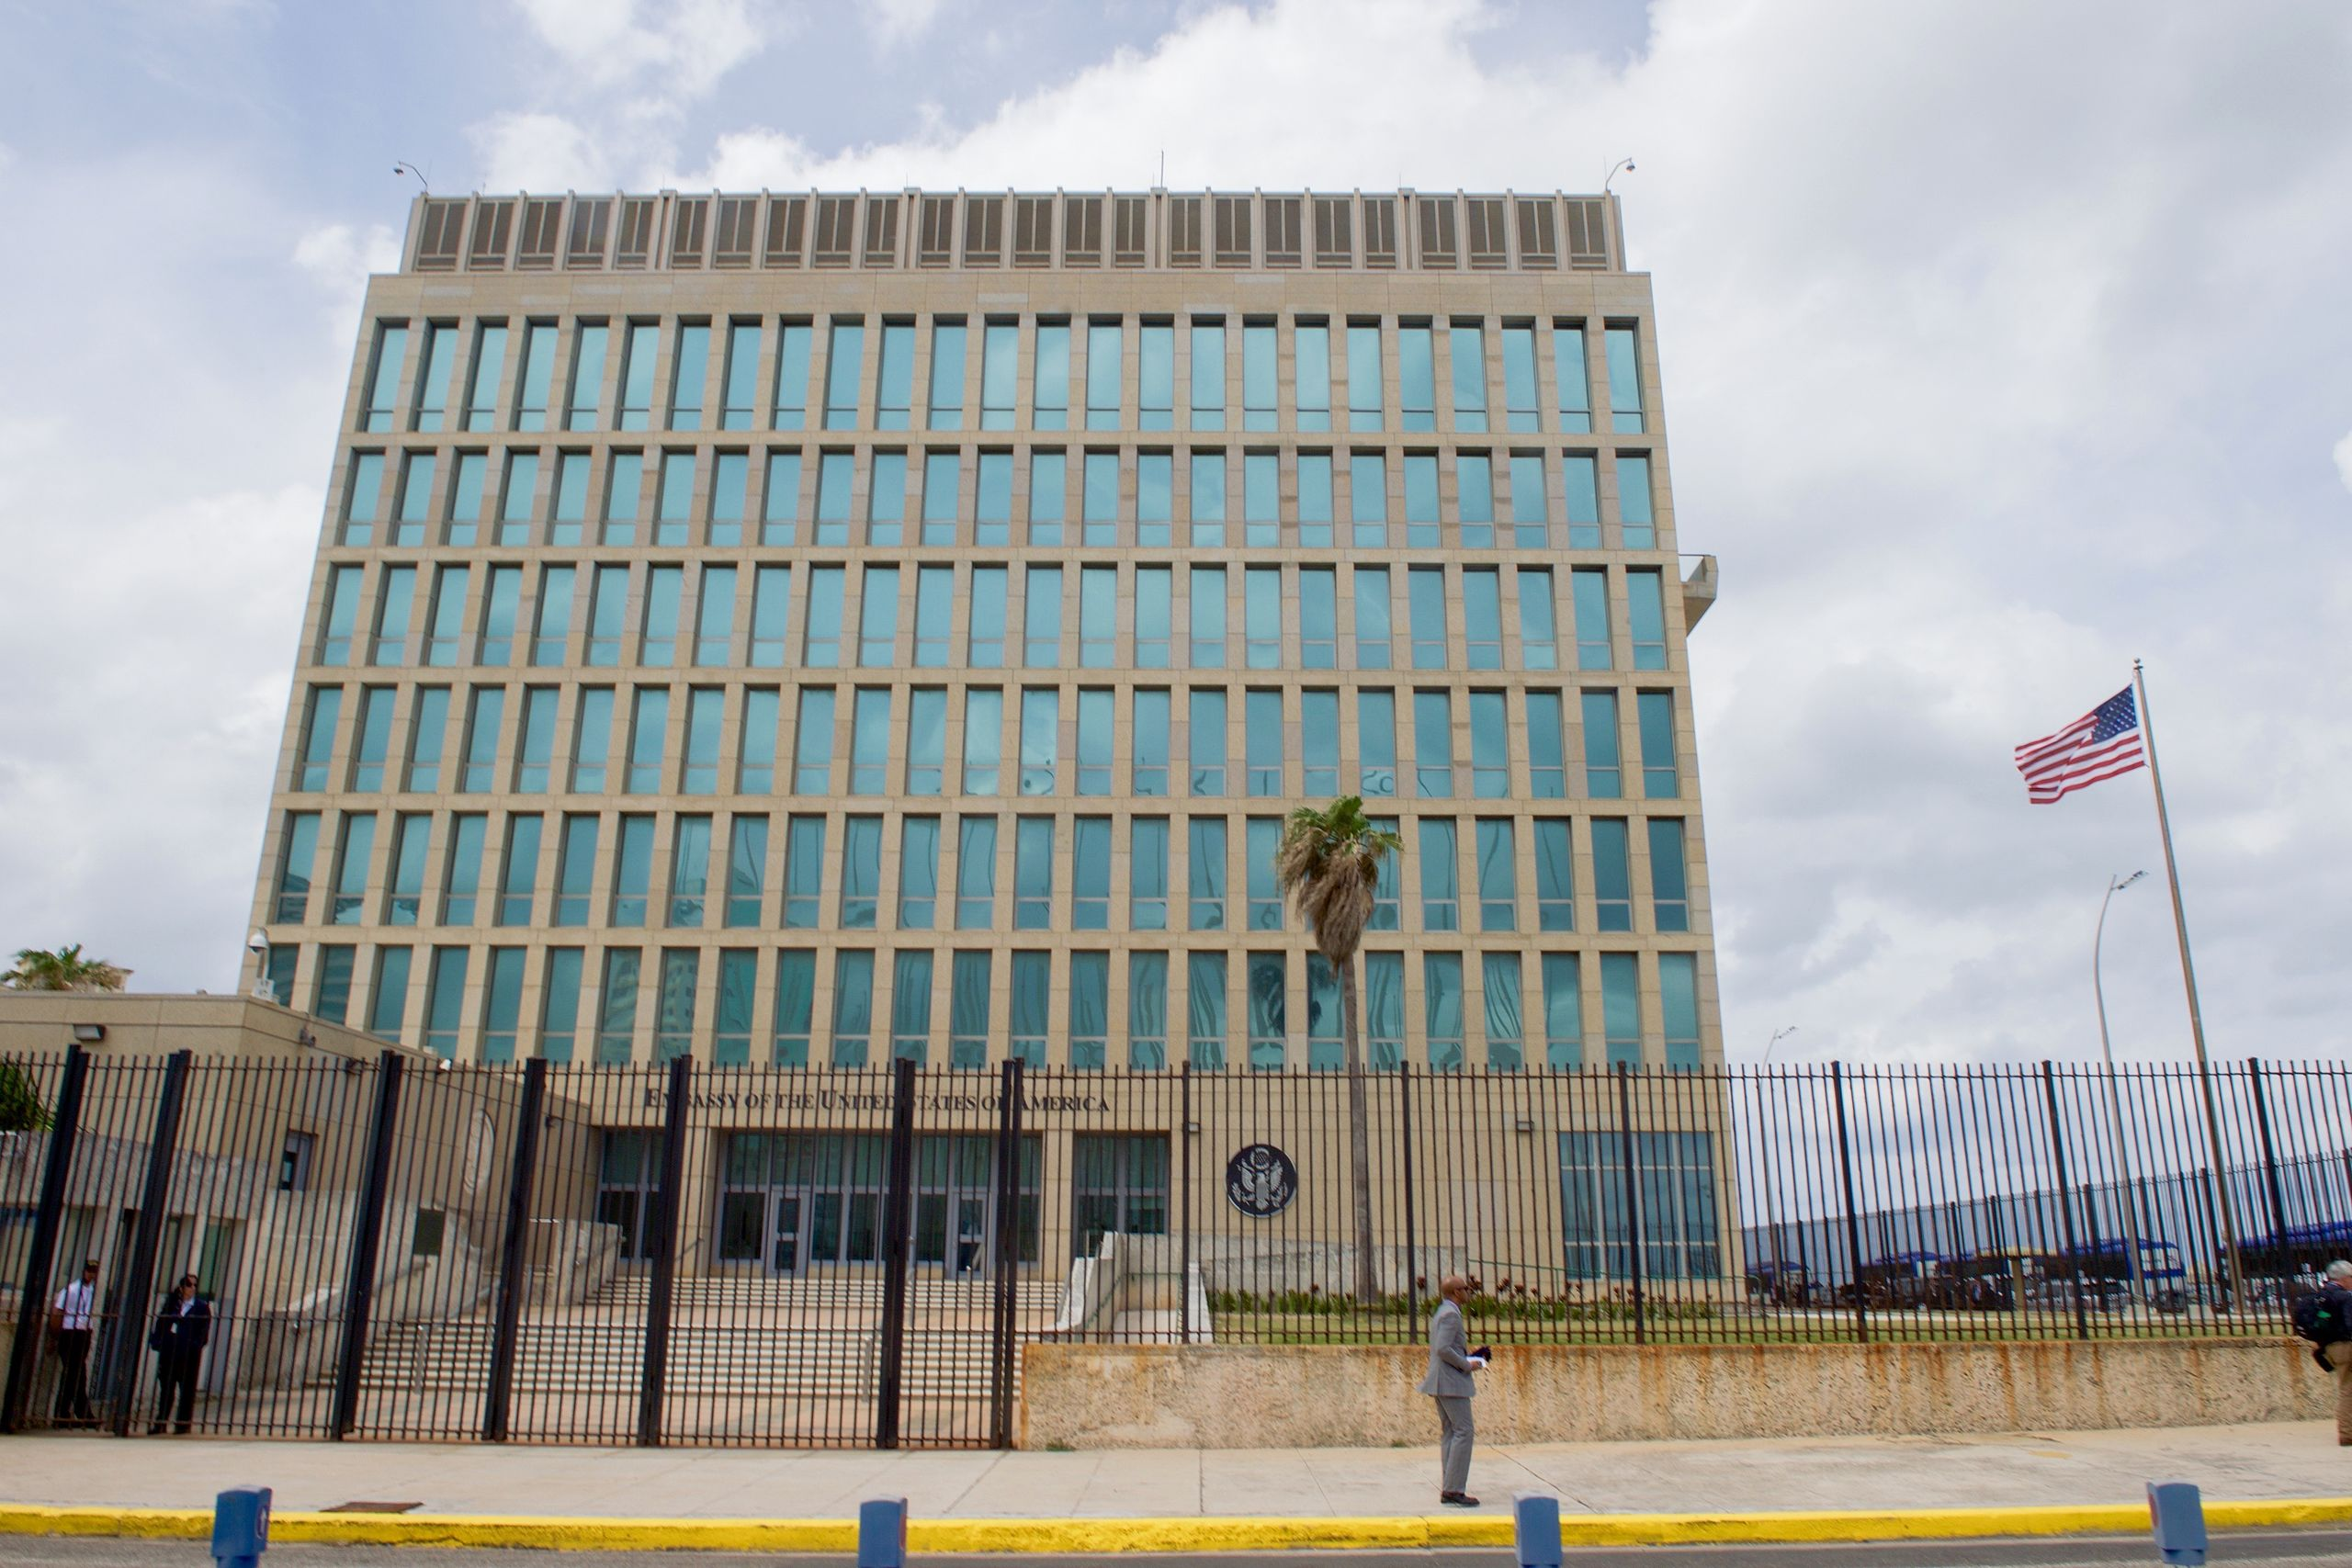 Havana Syndrome: Were Our Diplomats Attacked with Microwave Weapons ...